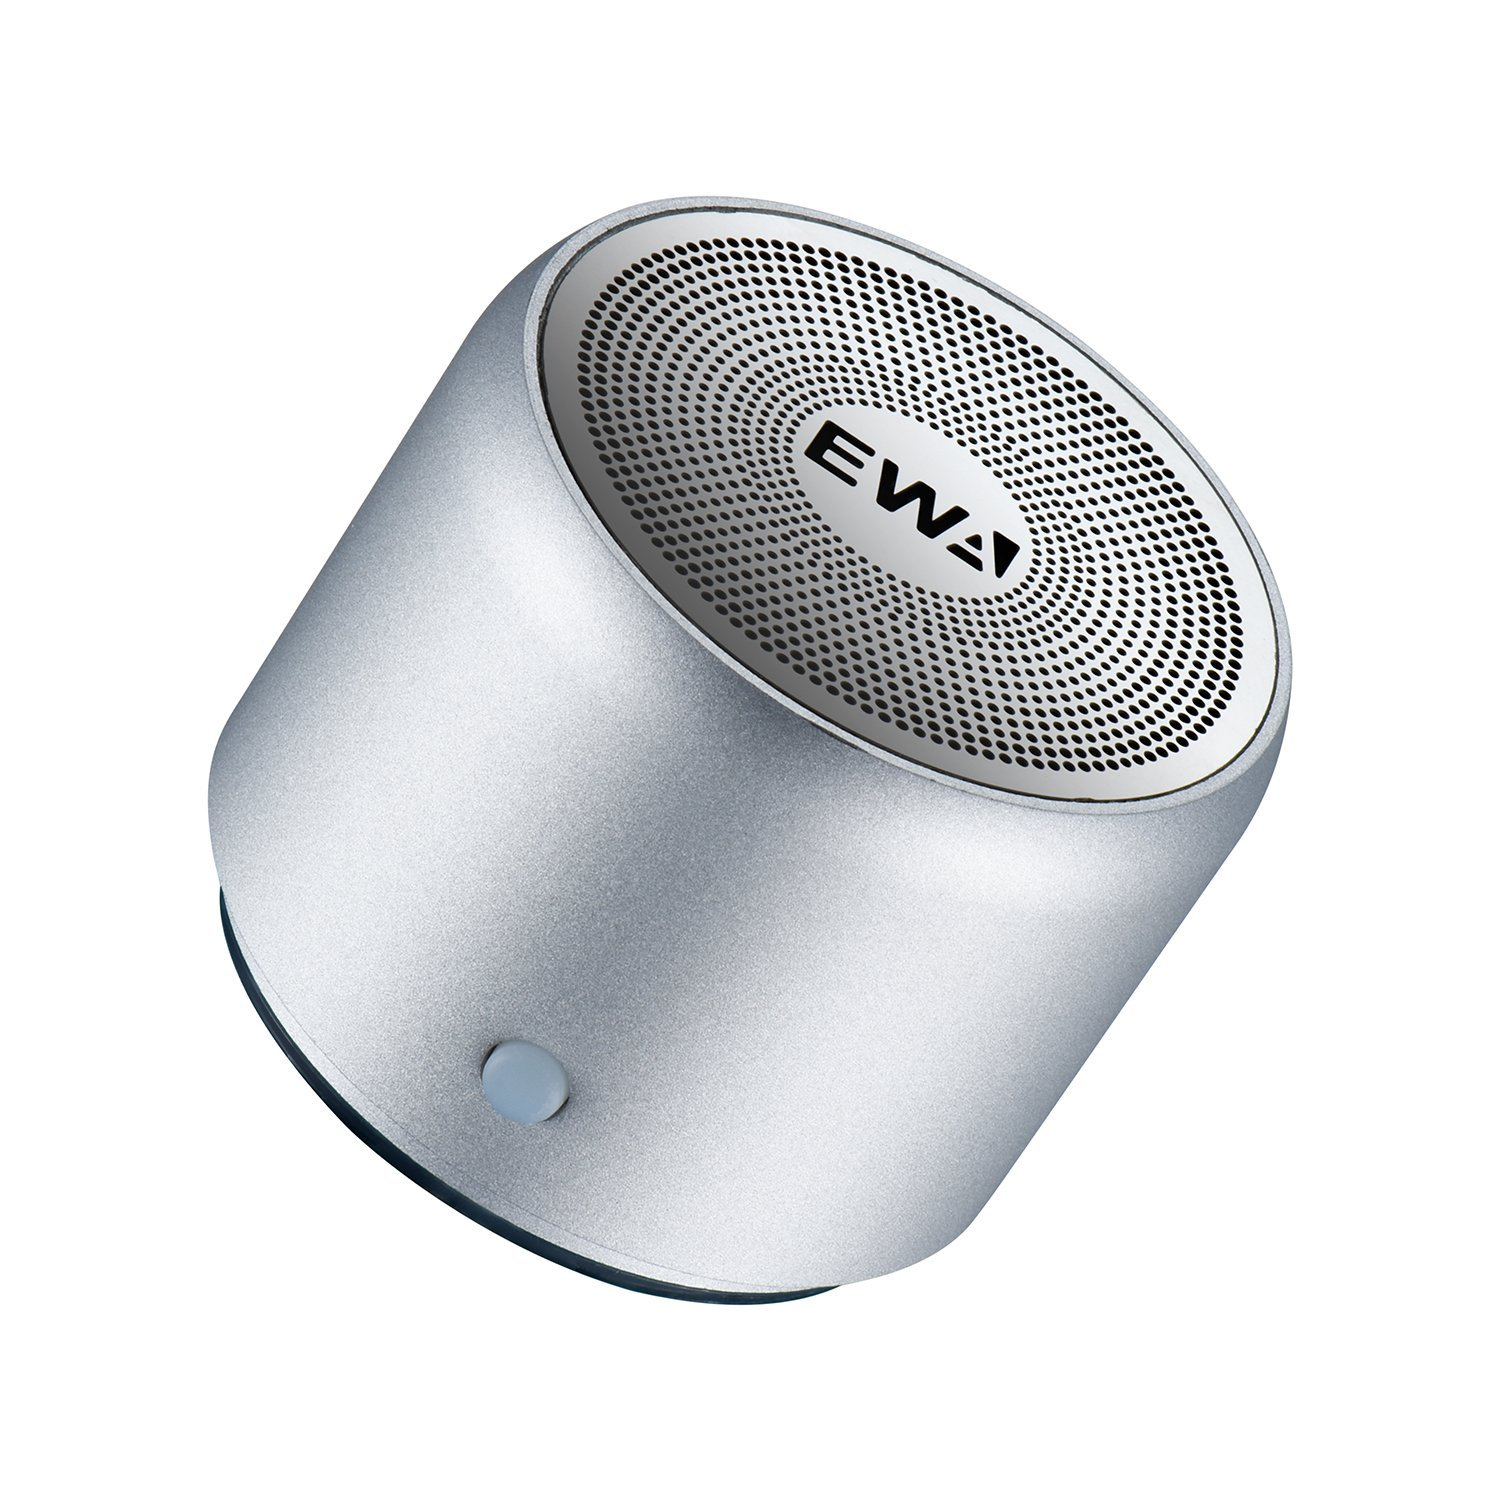 EWA A106 Portable Mini Bluetooth Speaker with Passive Radiator, Powerful Sound, Enhanced Bass, Tiny Body Loud Voice, Perfect Wireless Speaker For Shower, Travel, Outdoor, Echo Dot, Hiking and More by Ewa (Image #1)